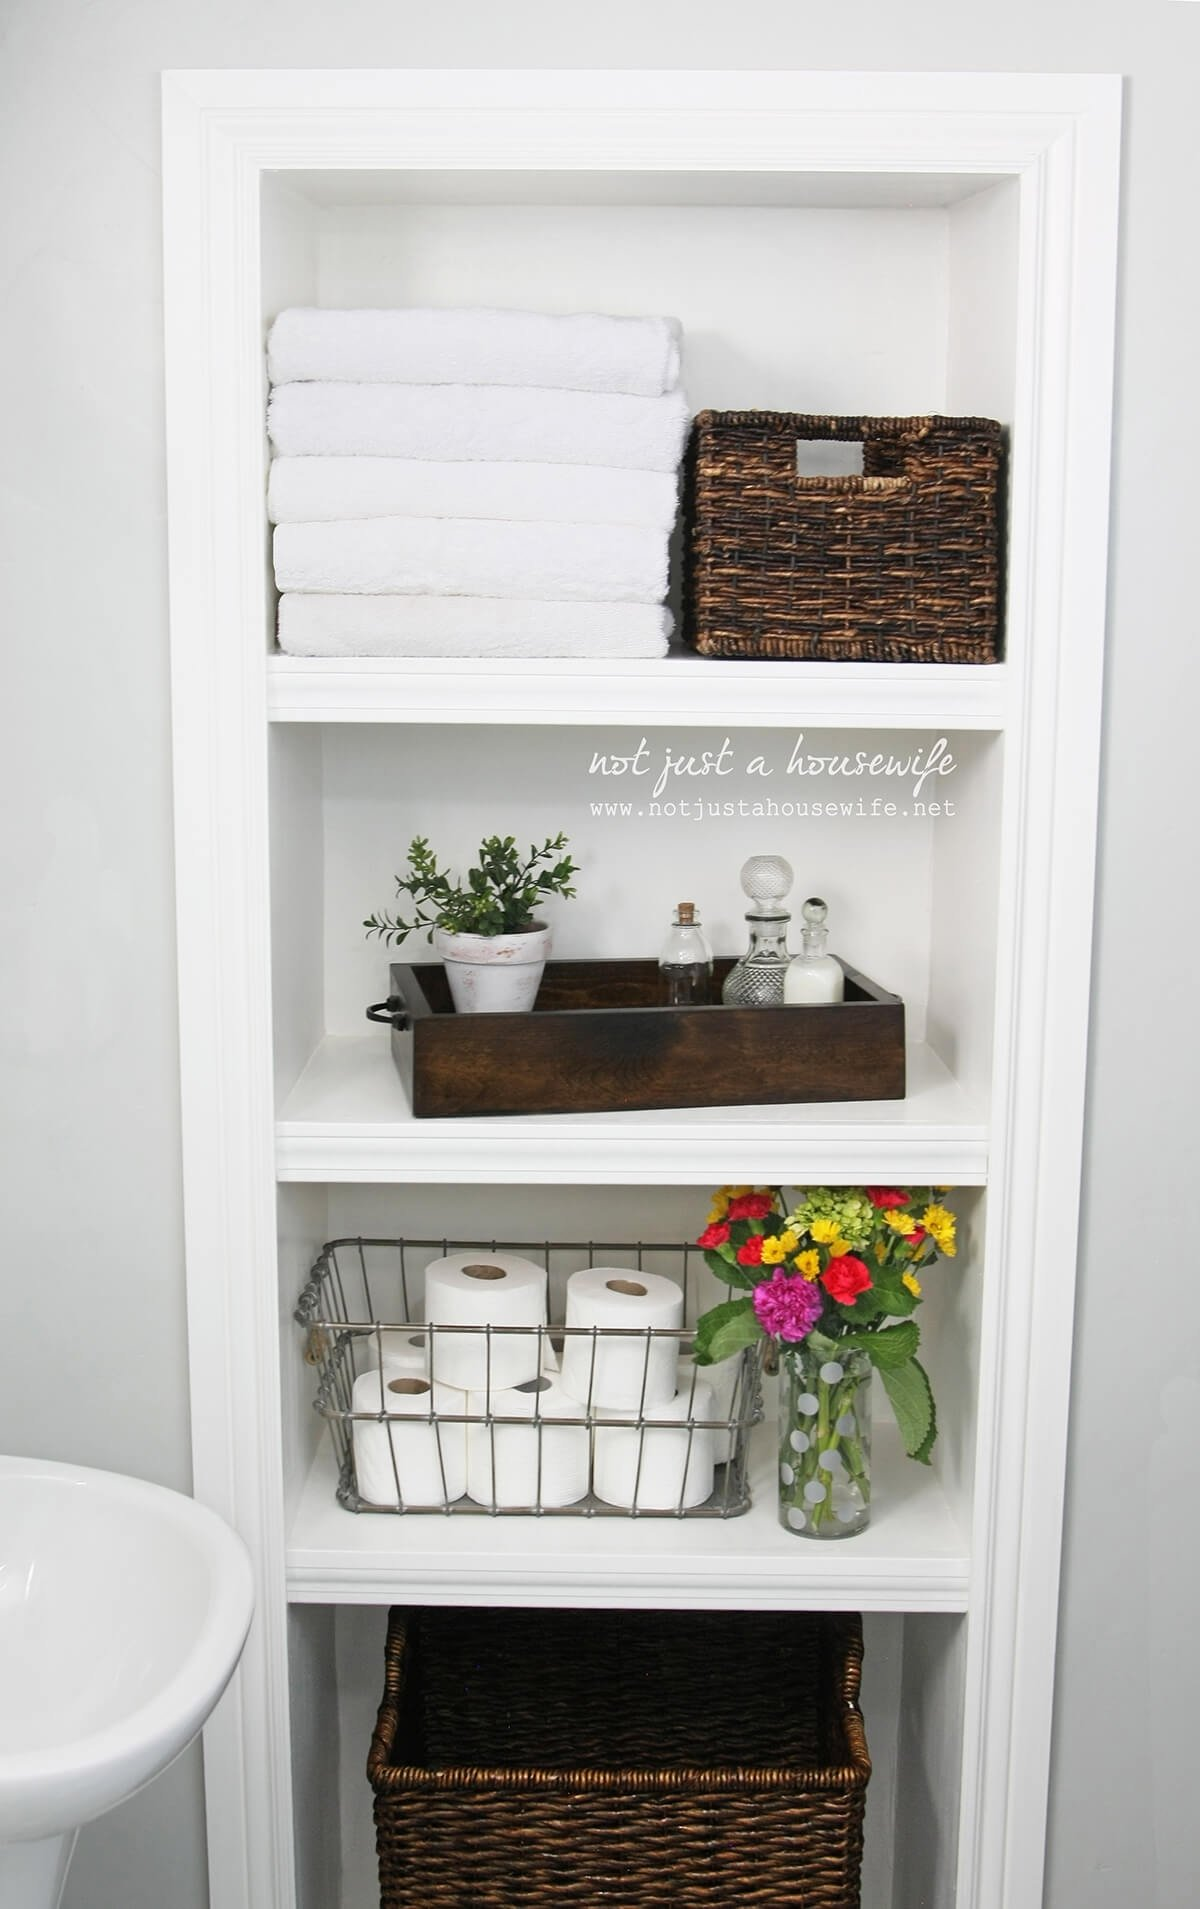 10 Stunning Storage Ideas For Small Bathrooms